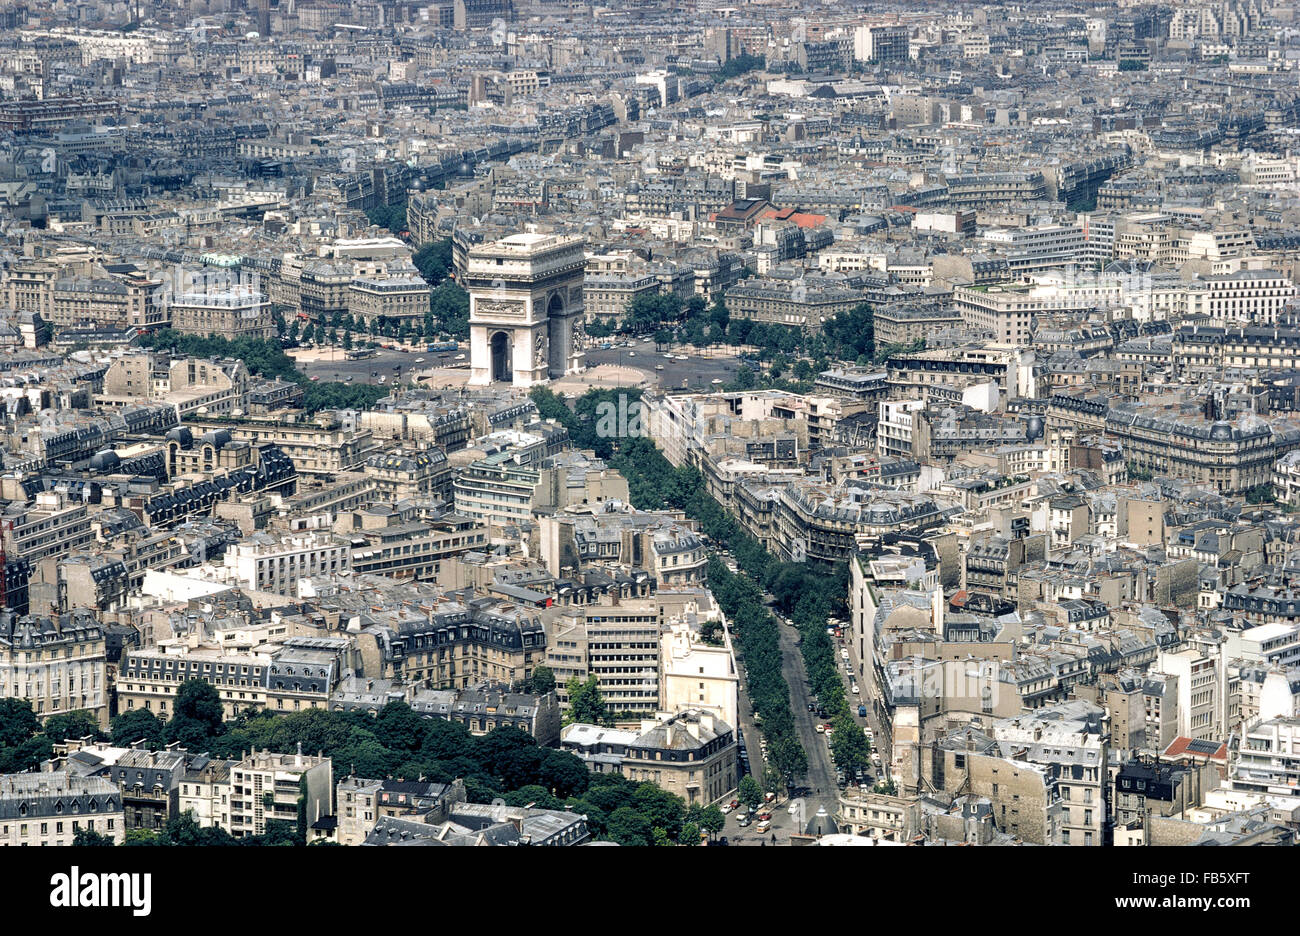 An aerial photograph shows the towering Arc de Triomphe standing out amid the many buildings and tree-lined boulevards - Stock Image